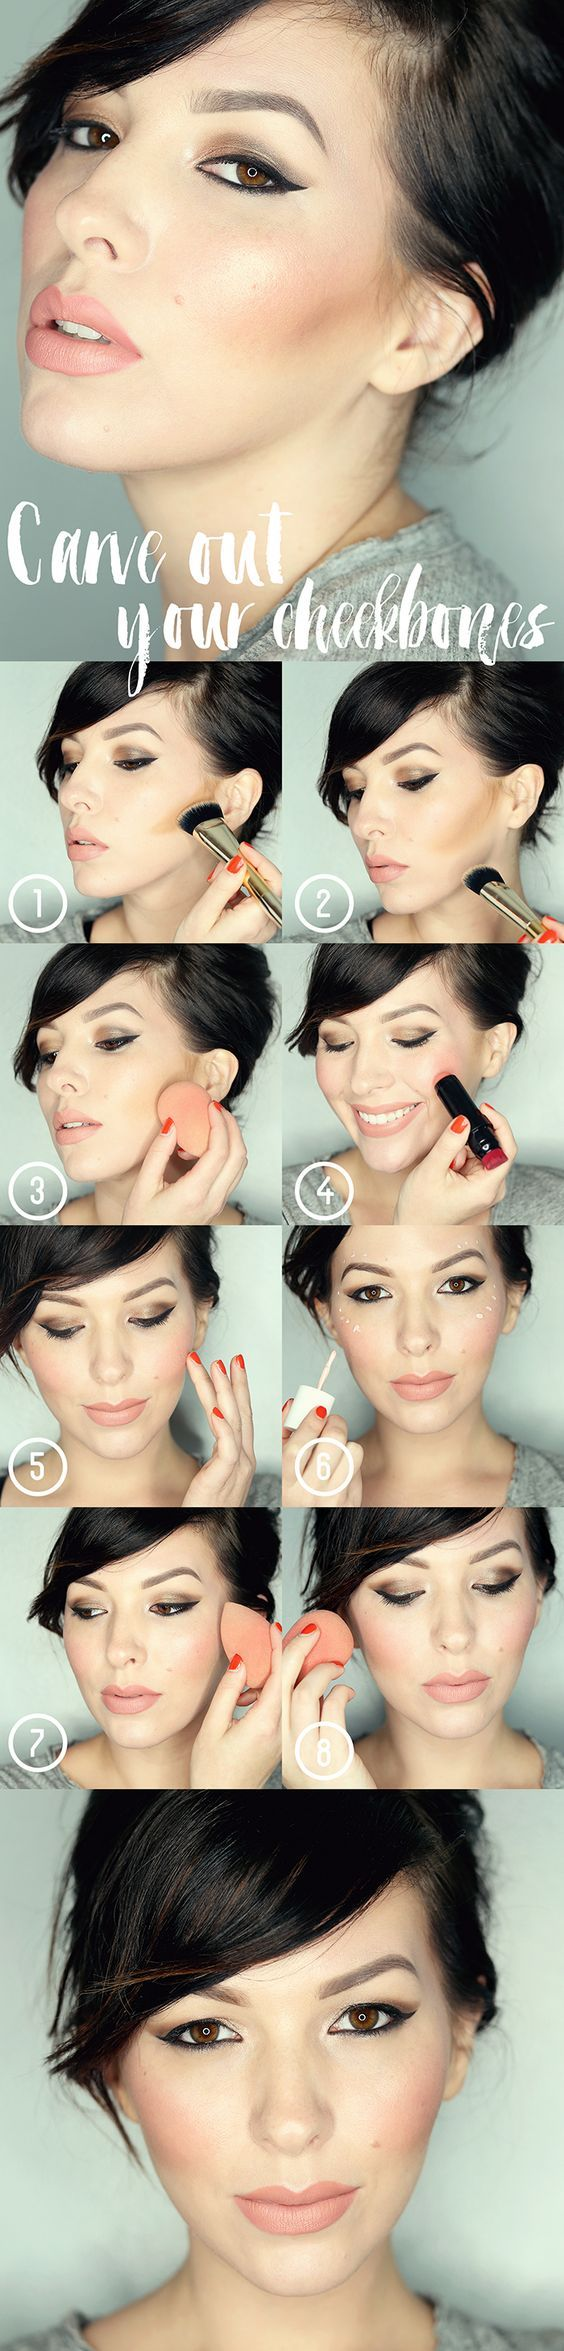 Makeup Guide To Choose The Right Blush For Your Skin Tone - Page 3 of 4 - Trend To Wear